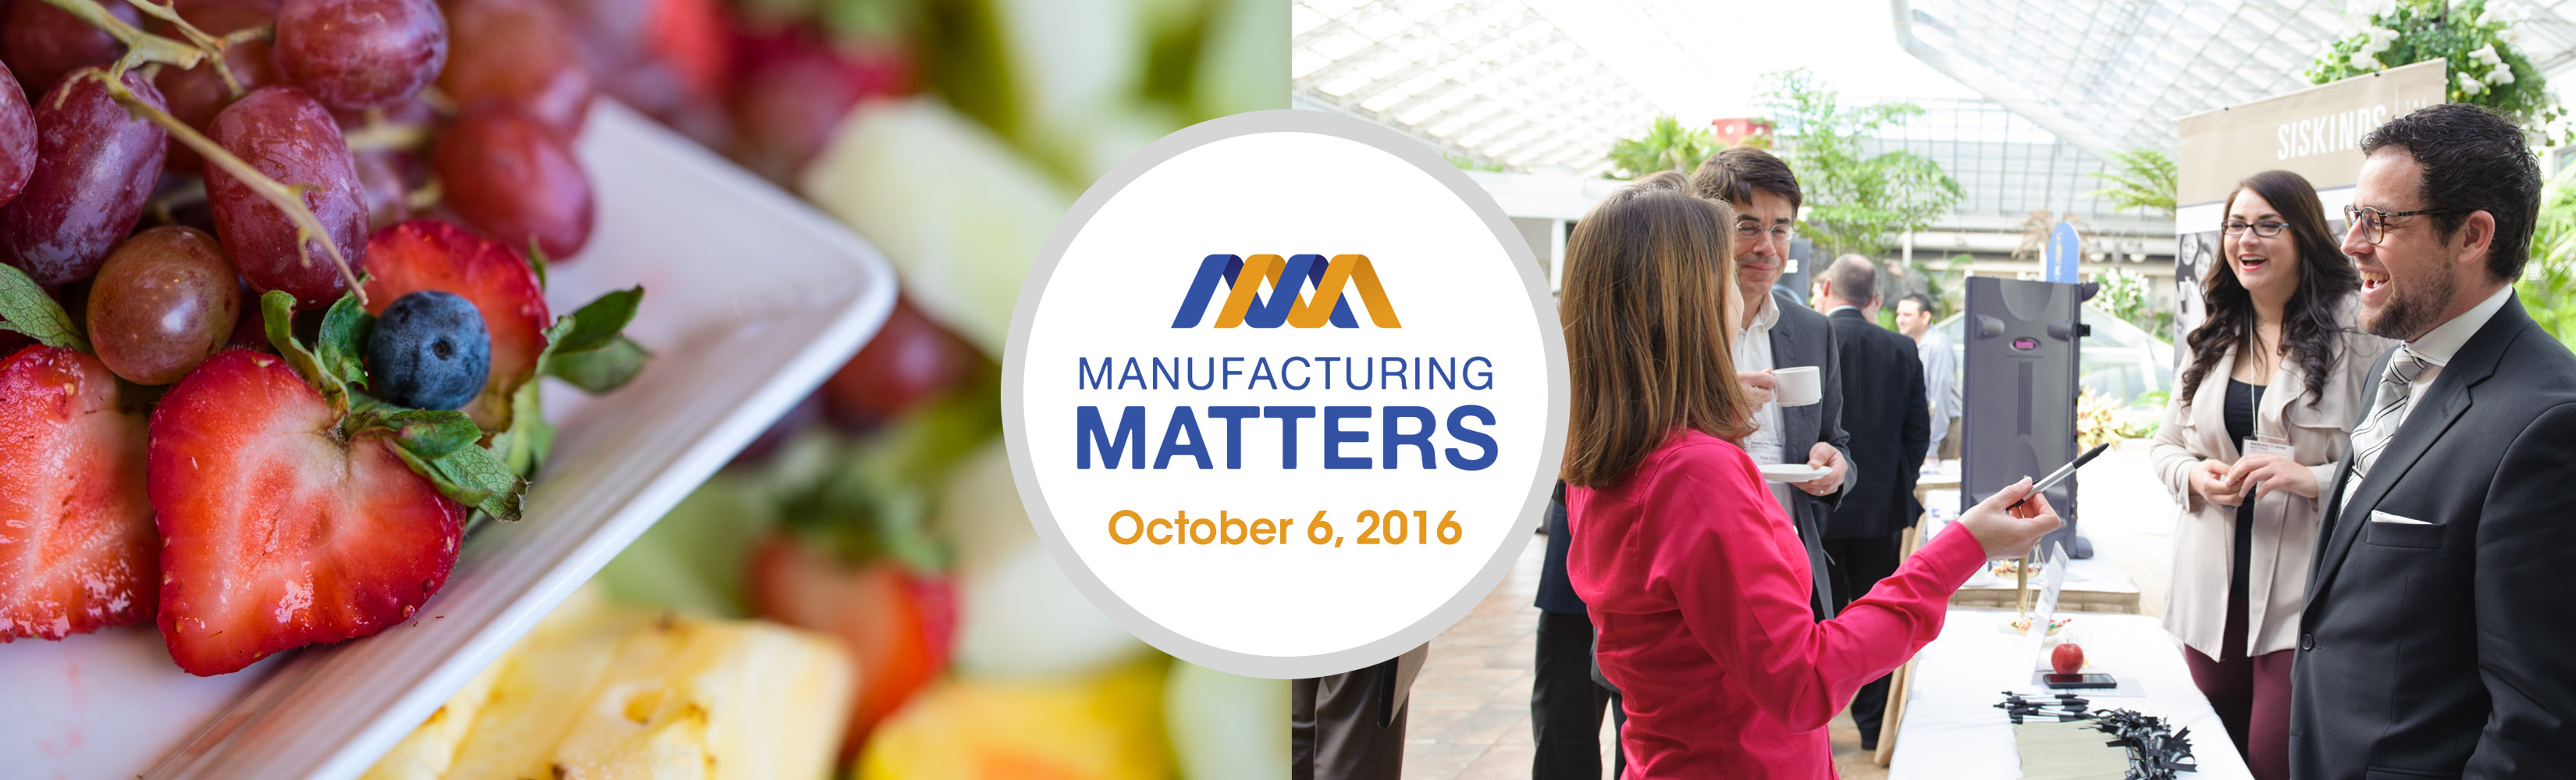 CD-website_Manufacturing-Matters_Header-20161